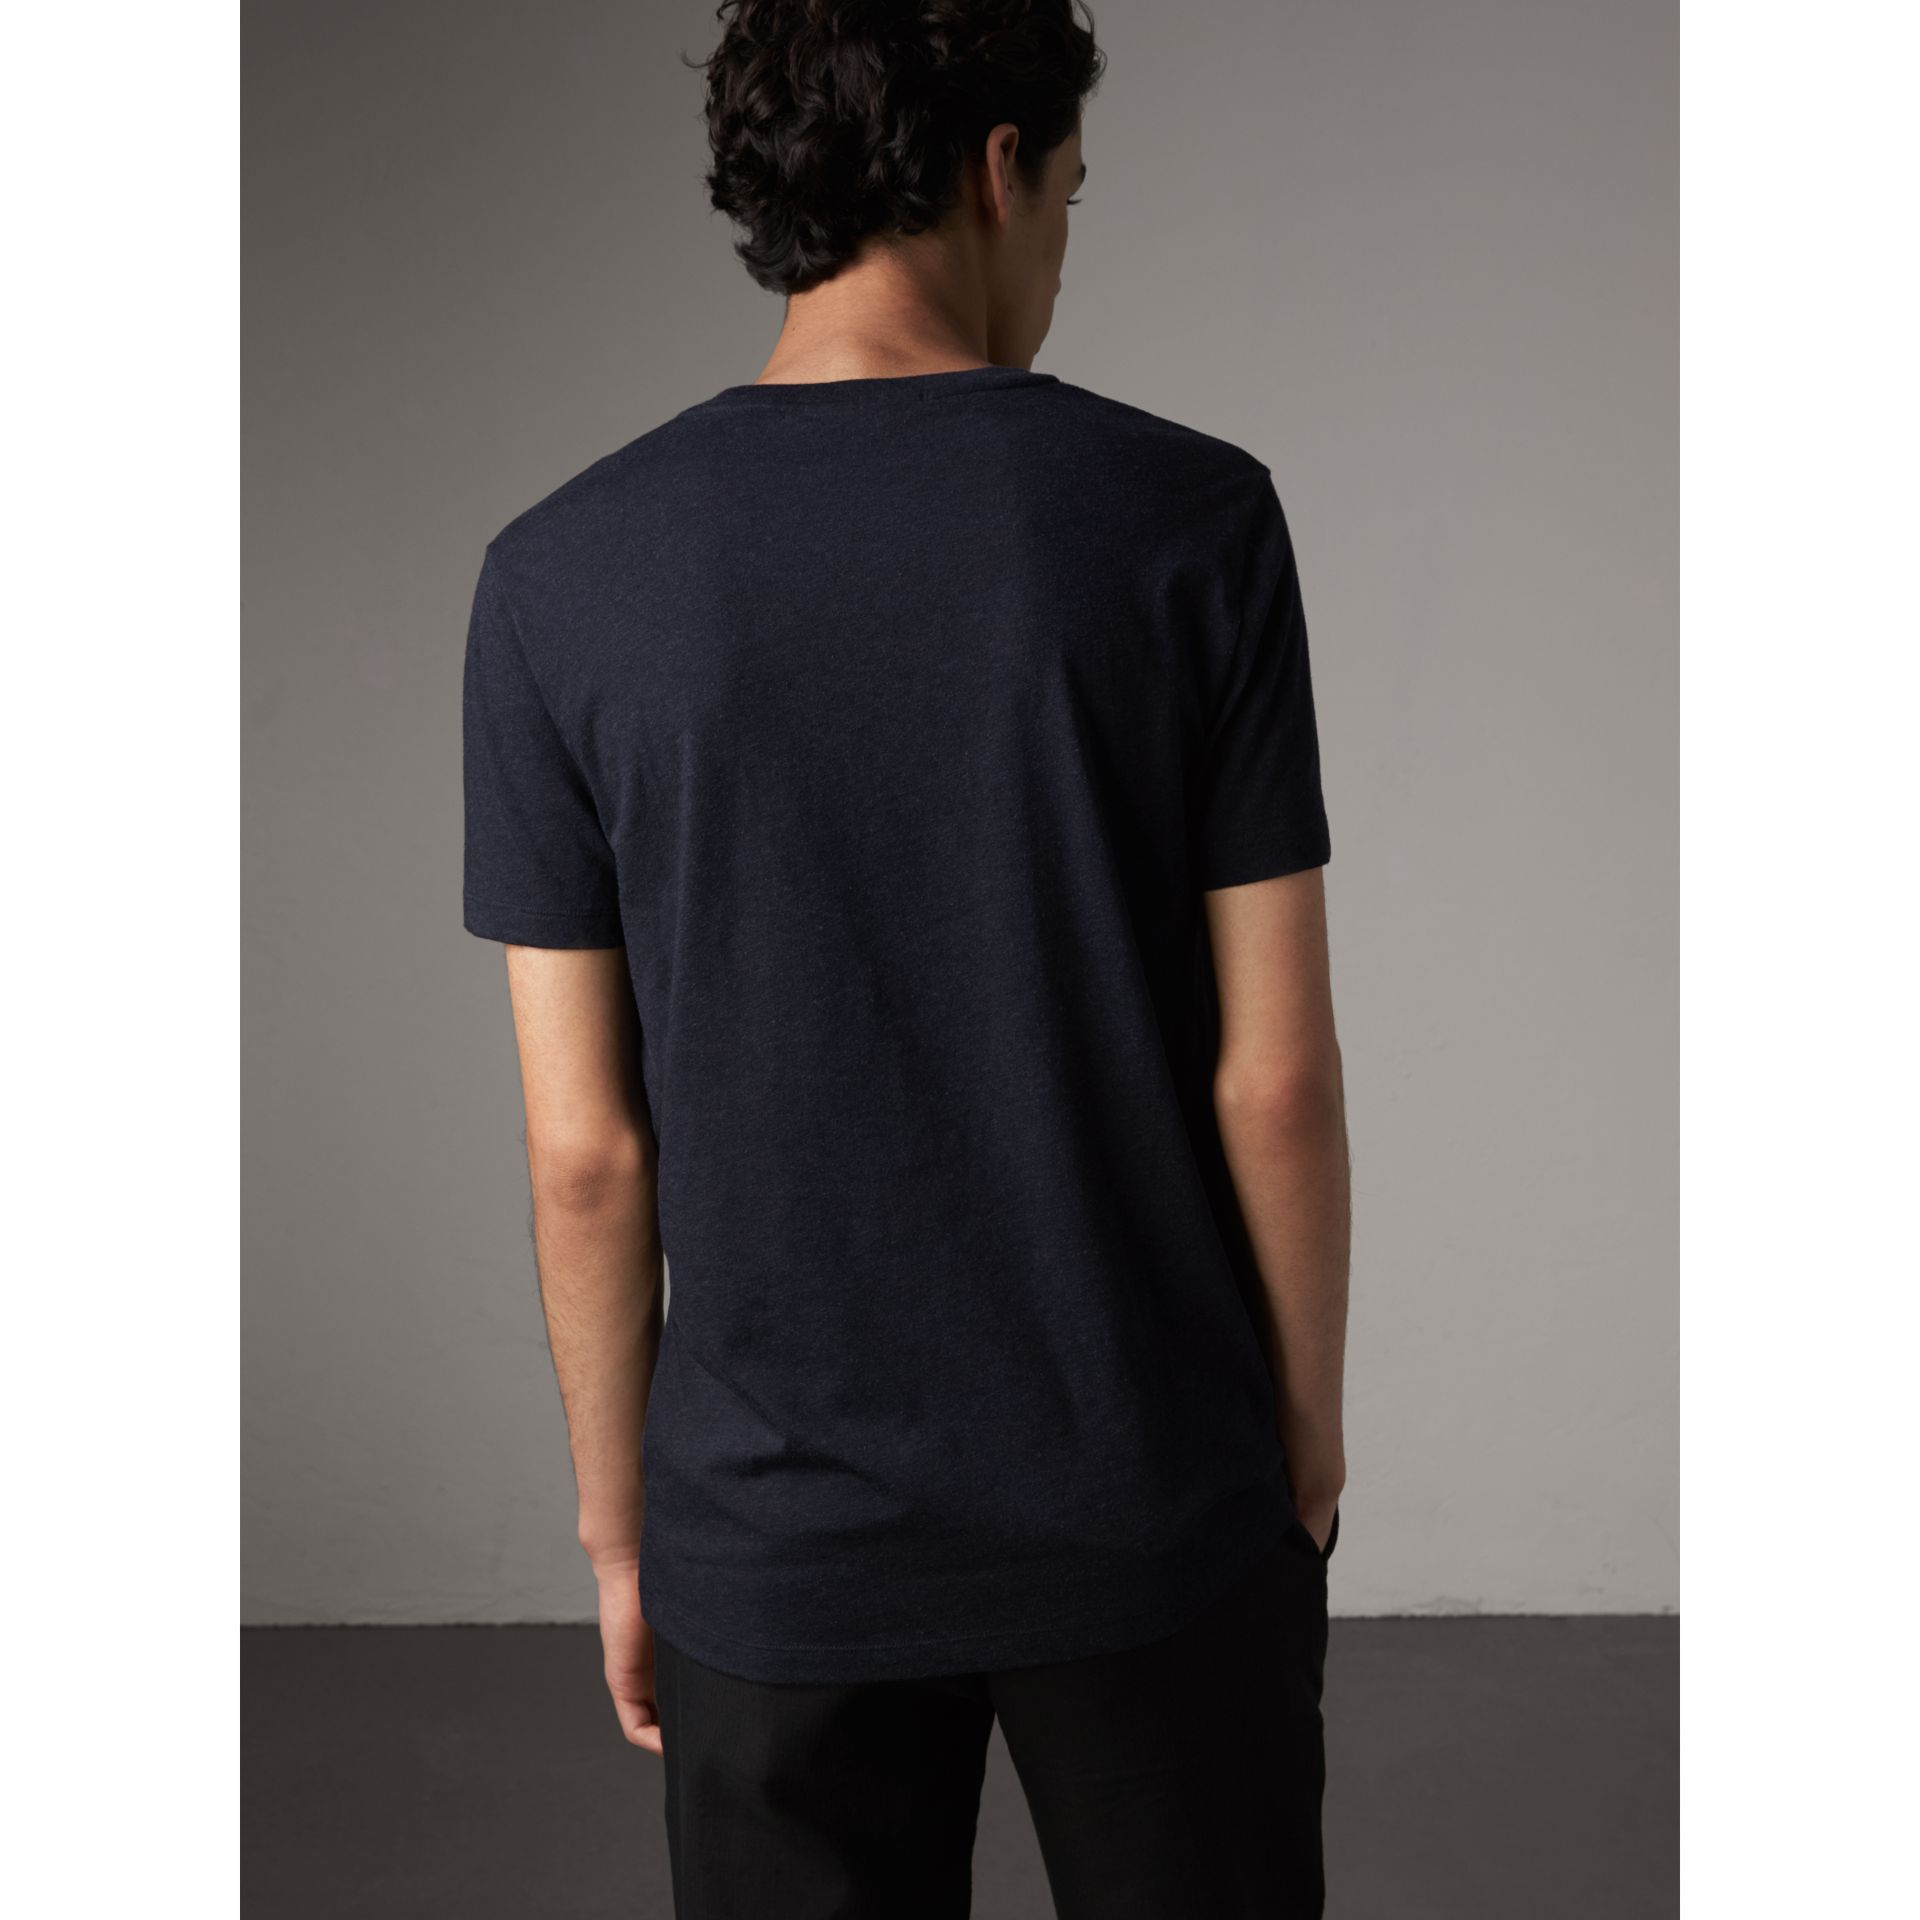 Devoré Cotton Jersey T-shirt in Navy Melange - Men | Burberry Australia - gallery image 2